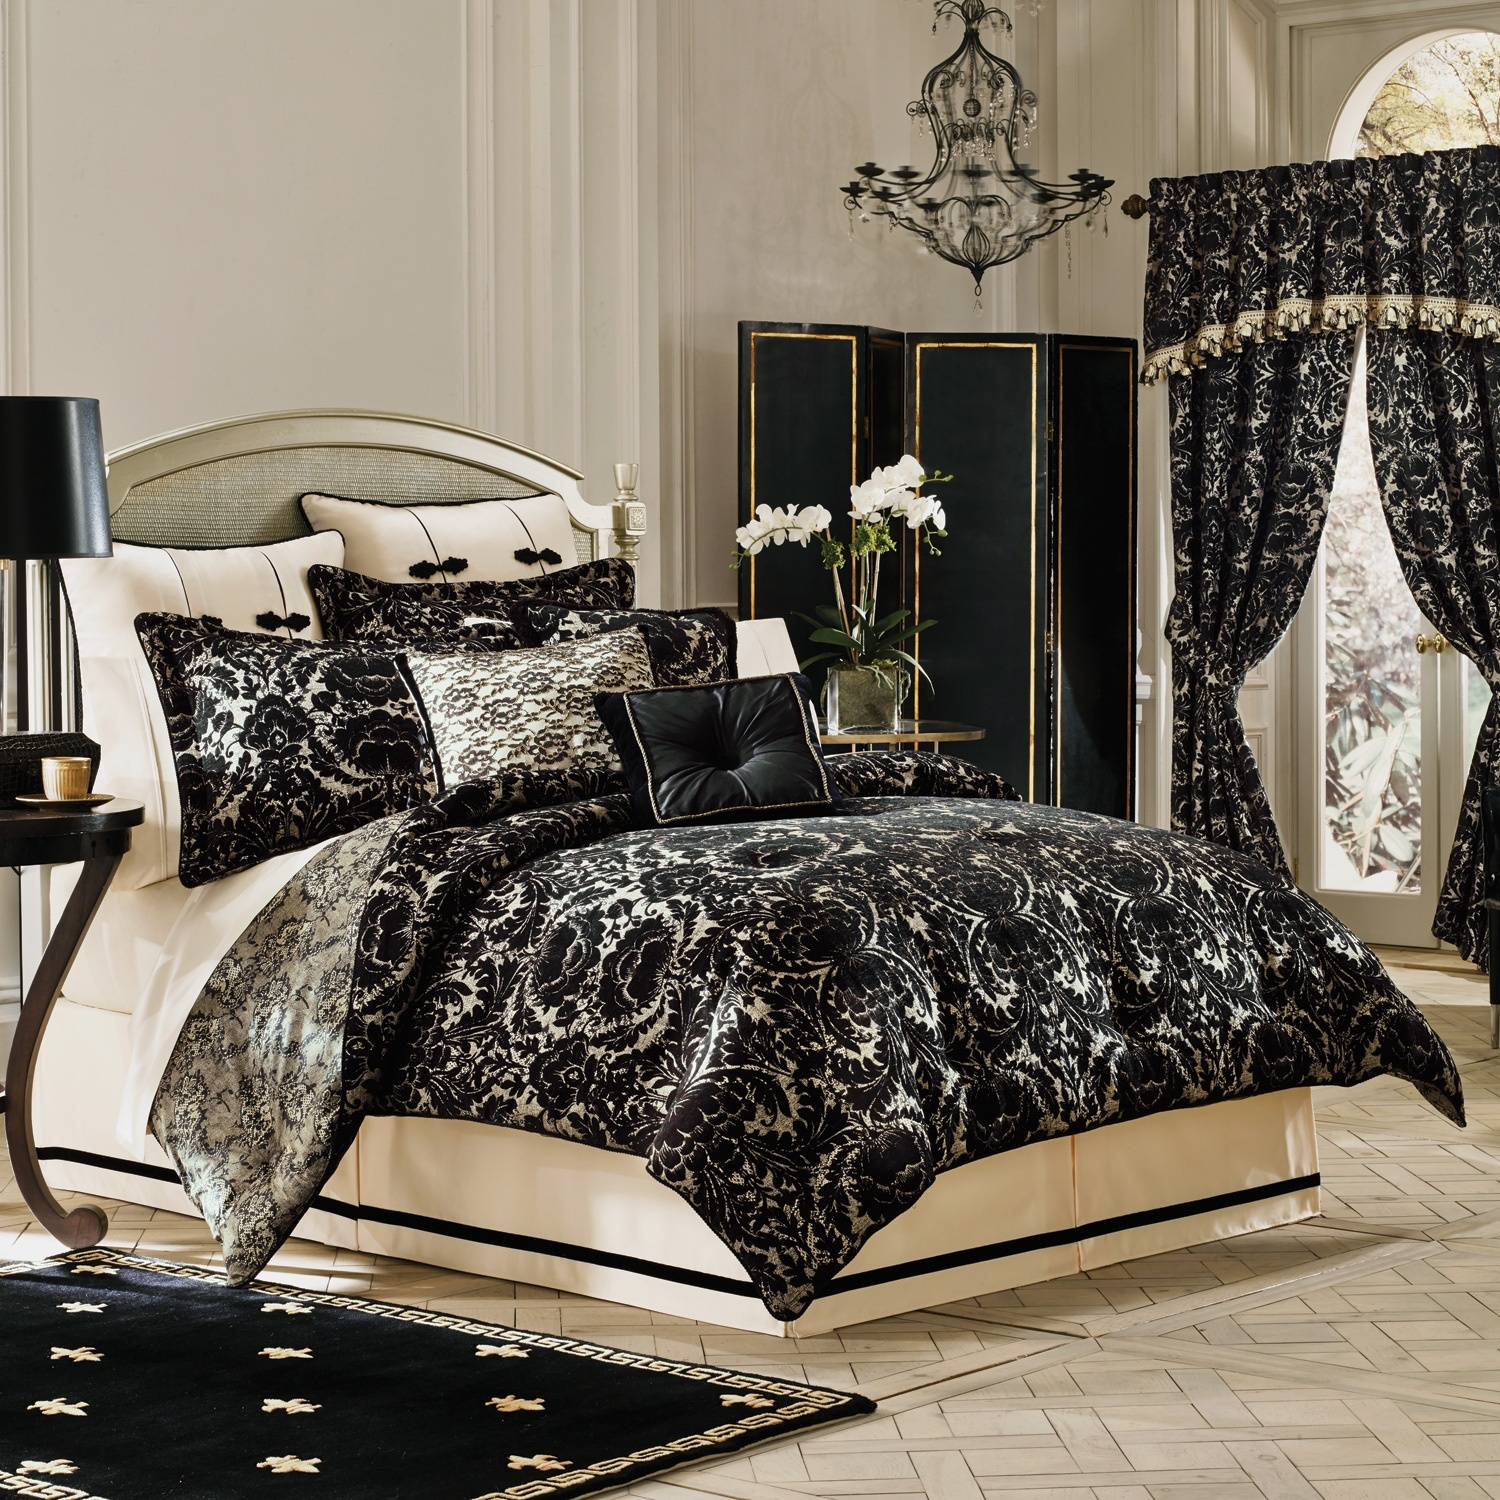 Bedding Sets California King has one of the best kind of other is Cheap Cal King Comforter Sets Comforter Sets - Spillo Caves